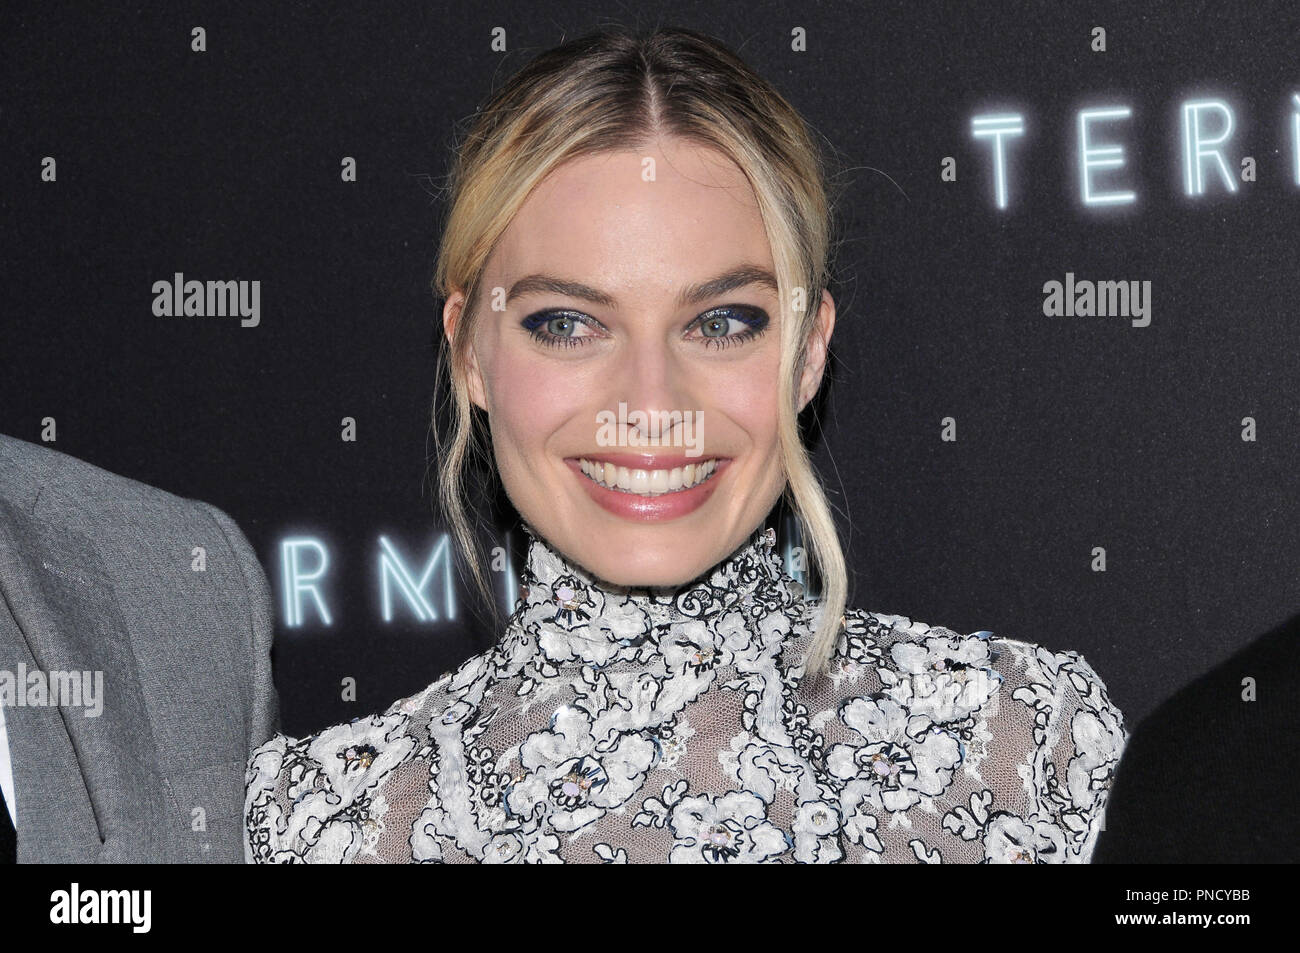 Margot Robbie at the 'Terminal' Premiere held at the ArcLight Hollywood in Los Angeles, CA on Tuesday, May 8, 2018. Photo by PRPP/ PictureLux  File Reference # 33590_013PRPP01  For Editorial Use Only -  All Rights Reserved - Stock Image